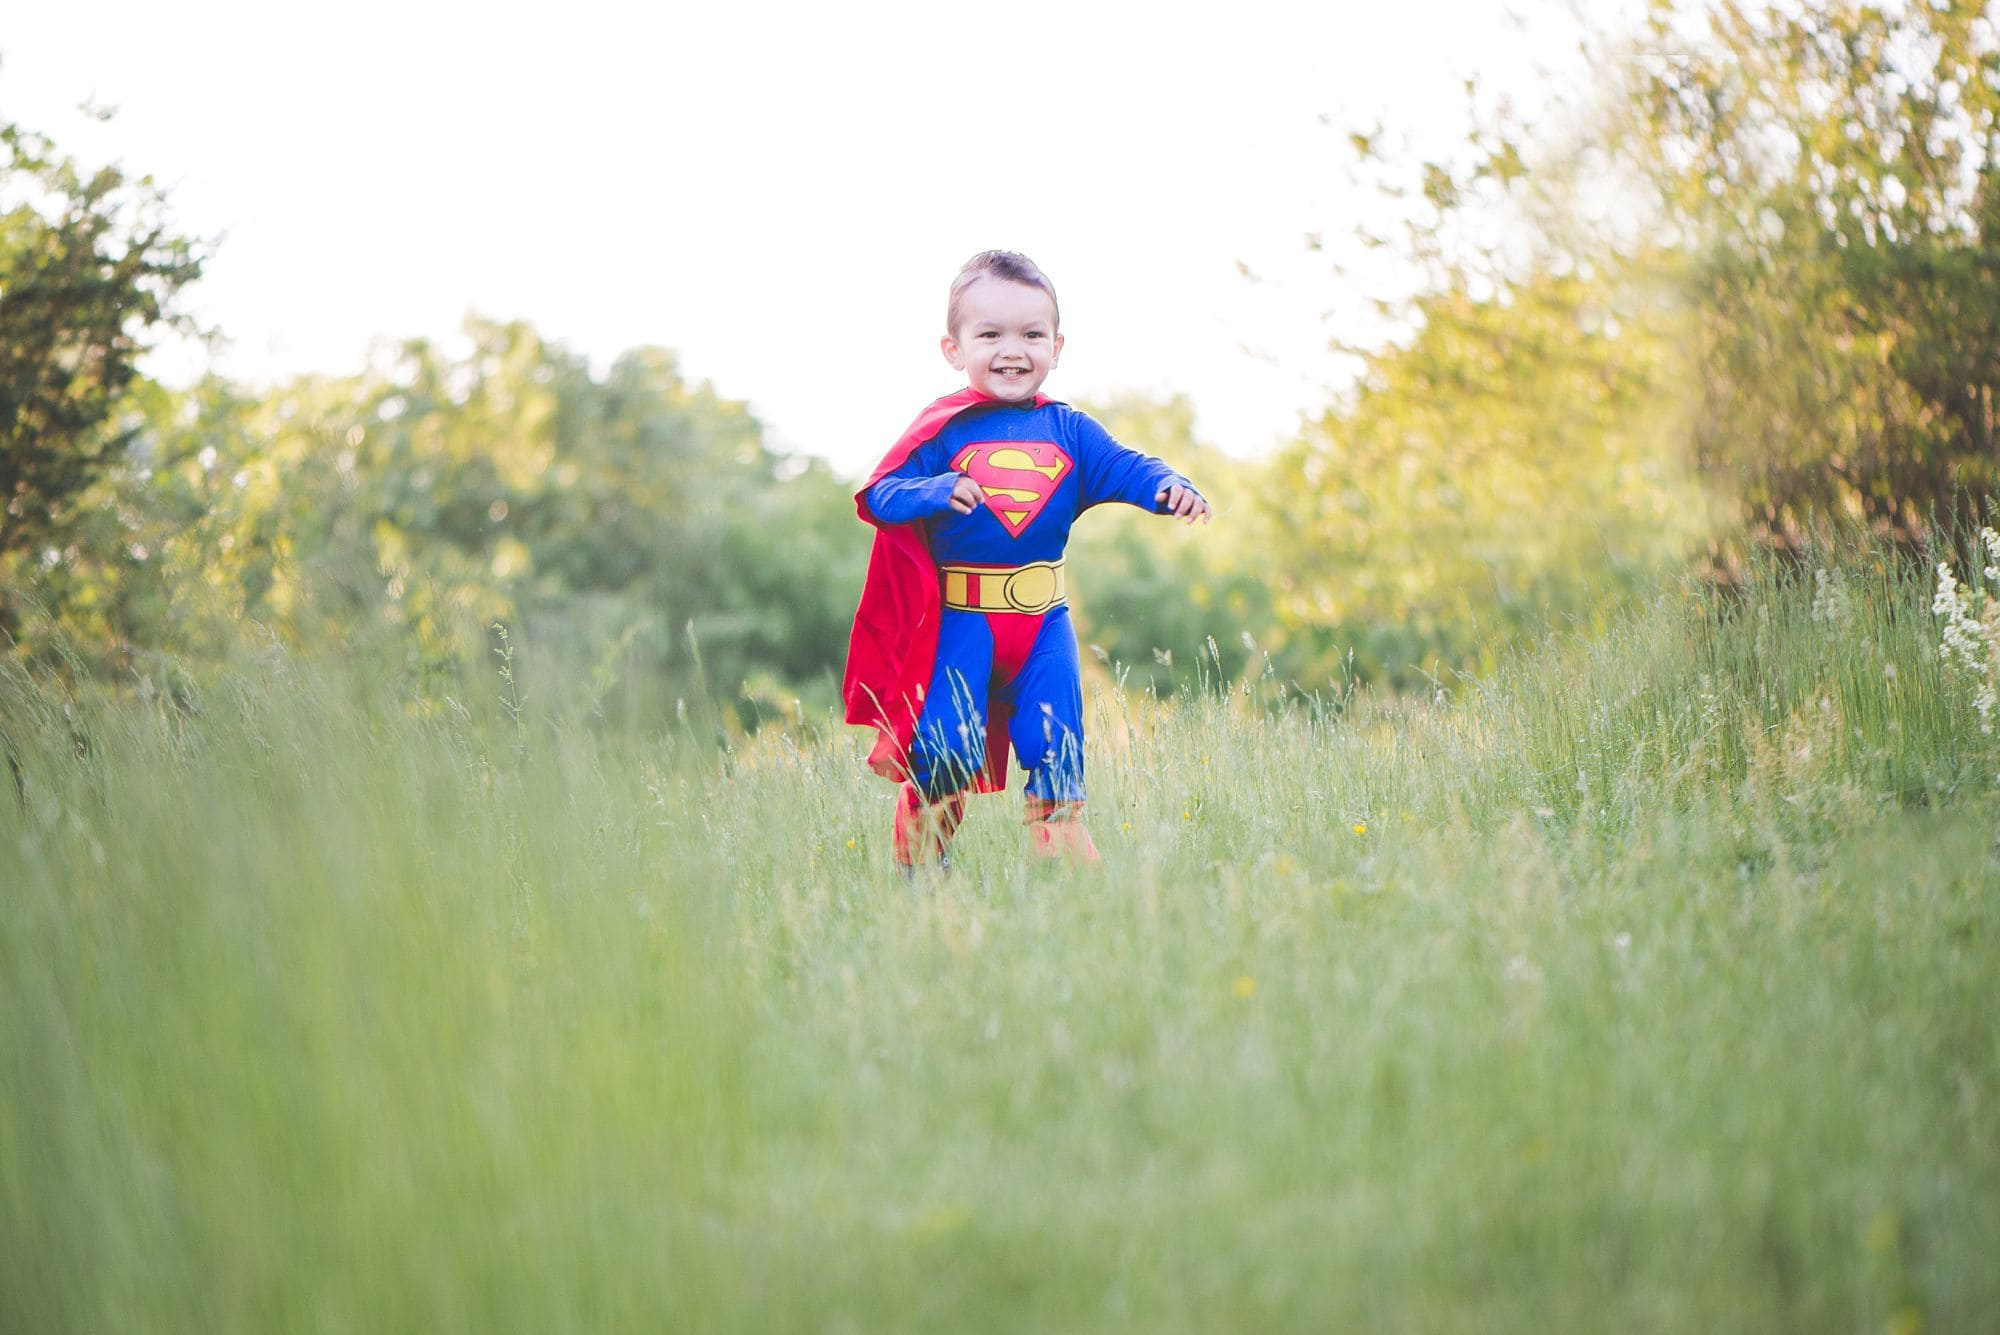 Little boy in superman costume playing n grassy field during golden hour